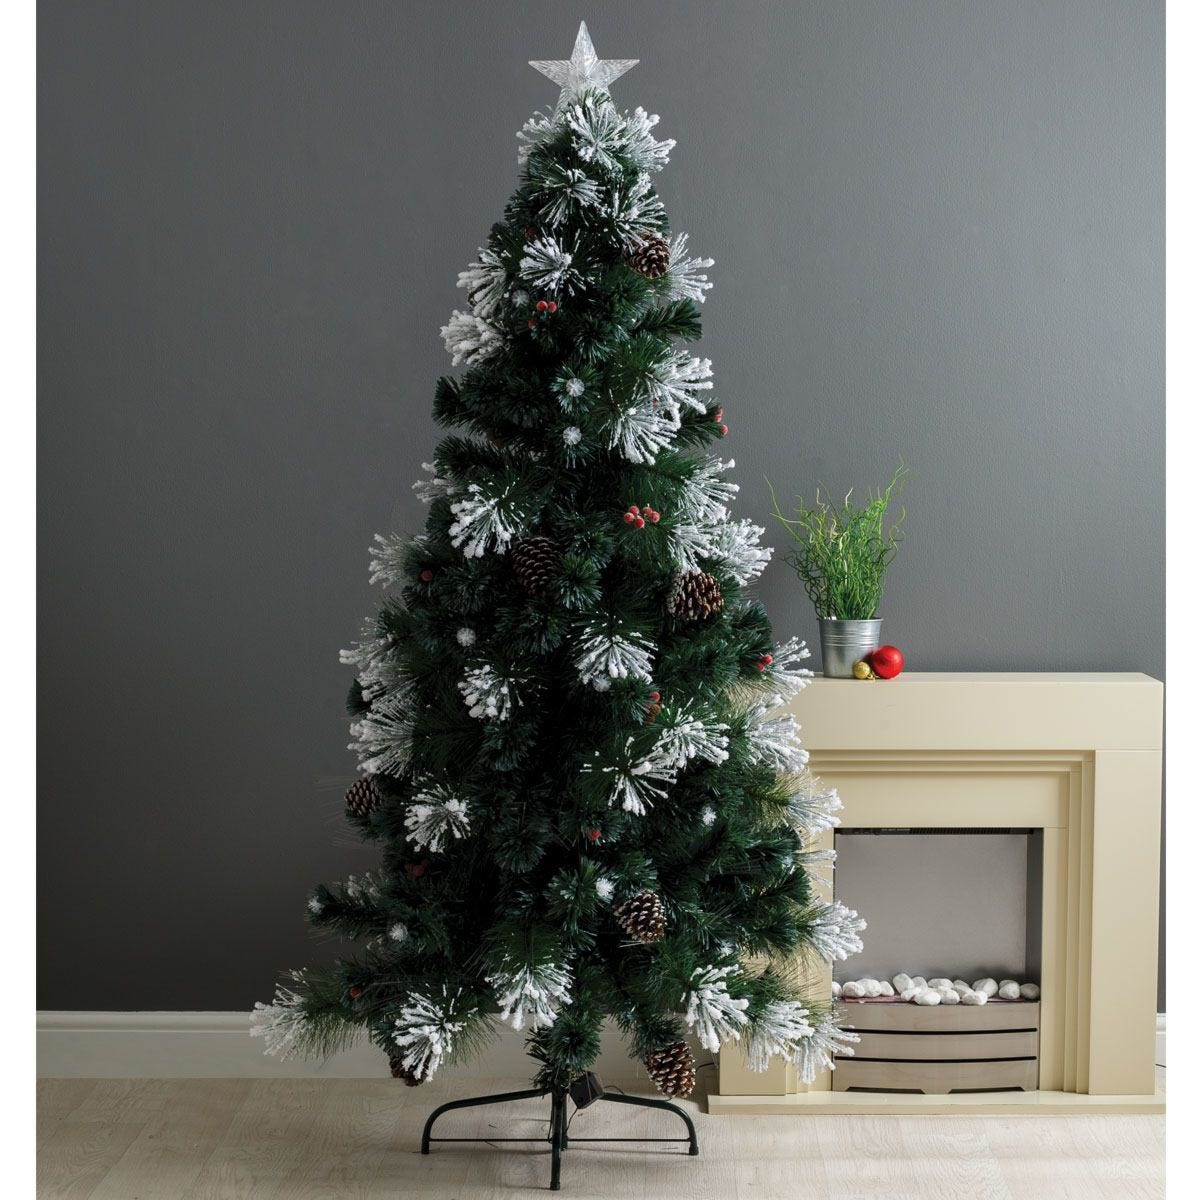 Robert Dyas Kensington Frosted Berries and Cones Fibre Optic Tree - 6ft